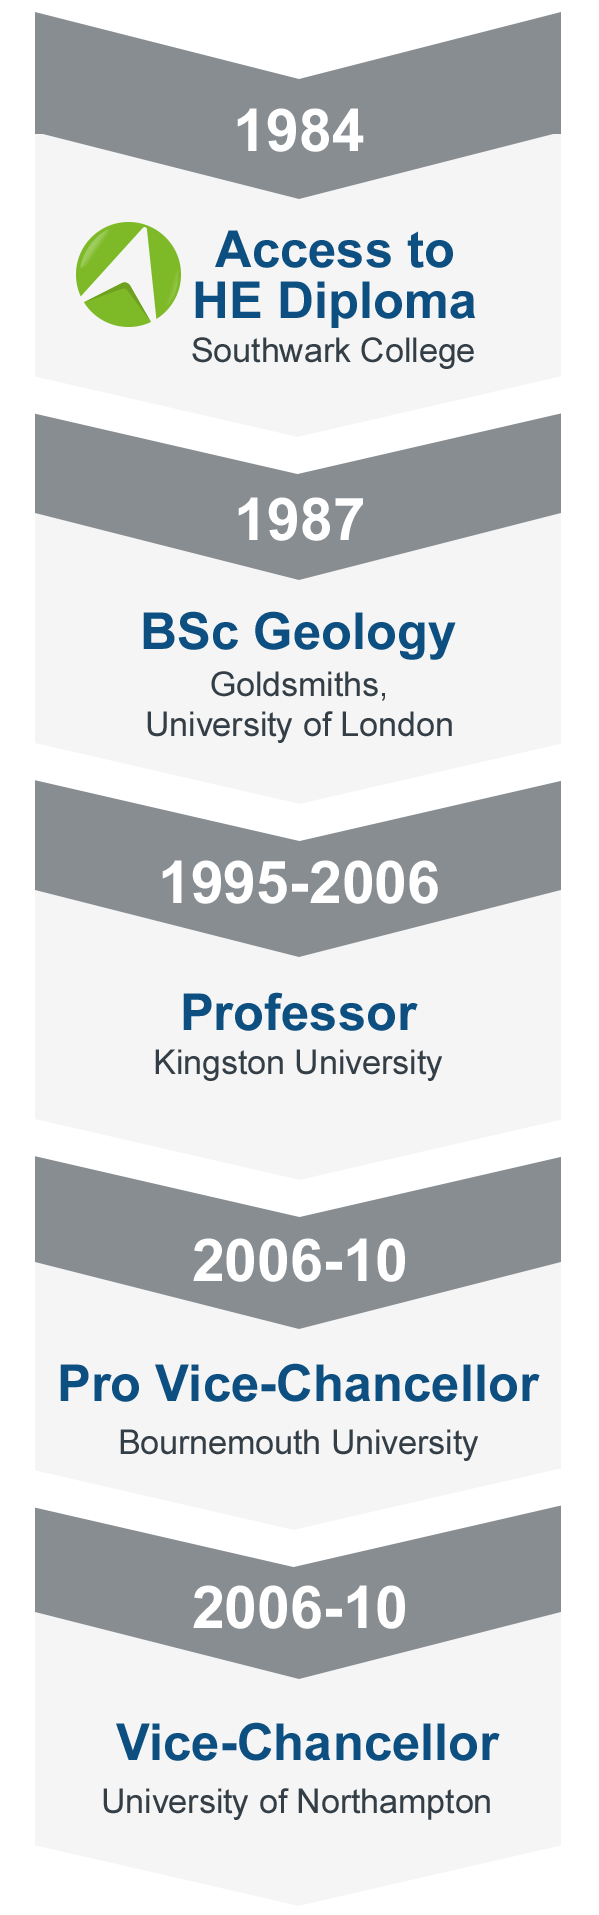 Timeline - 1984: Science Access course, Southwark College 1987: BSc Geology, Goldsmiths, University of London  1995-2006: Professor, Kingston University. 2006-2010: Pro Vice-Chancellor, Bournemouth University 2010: Vice-Chancellor, University of Northampton